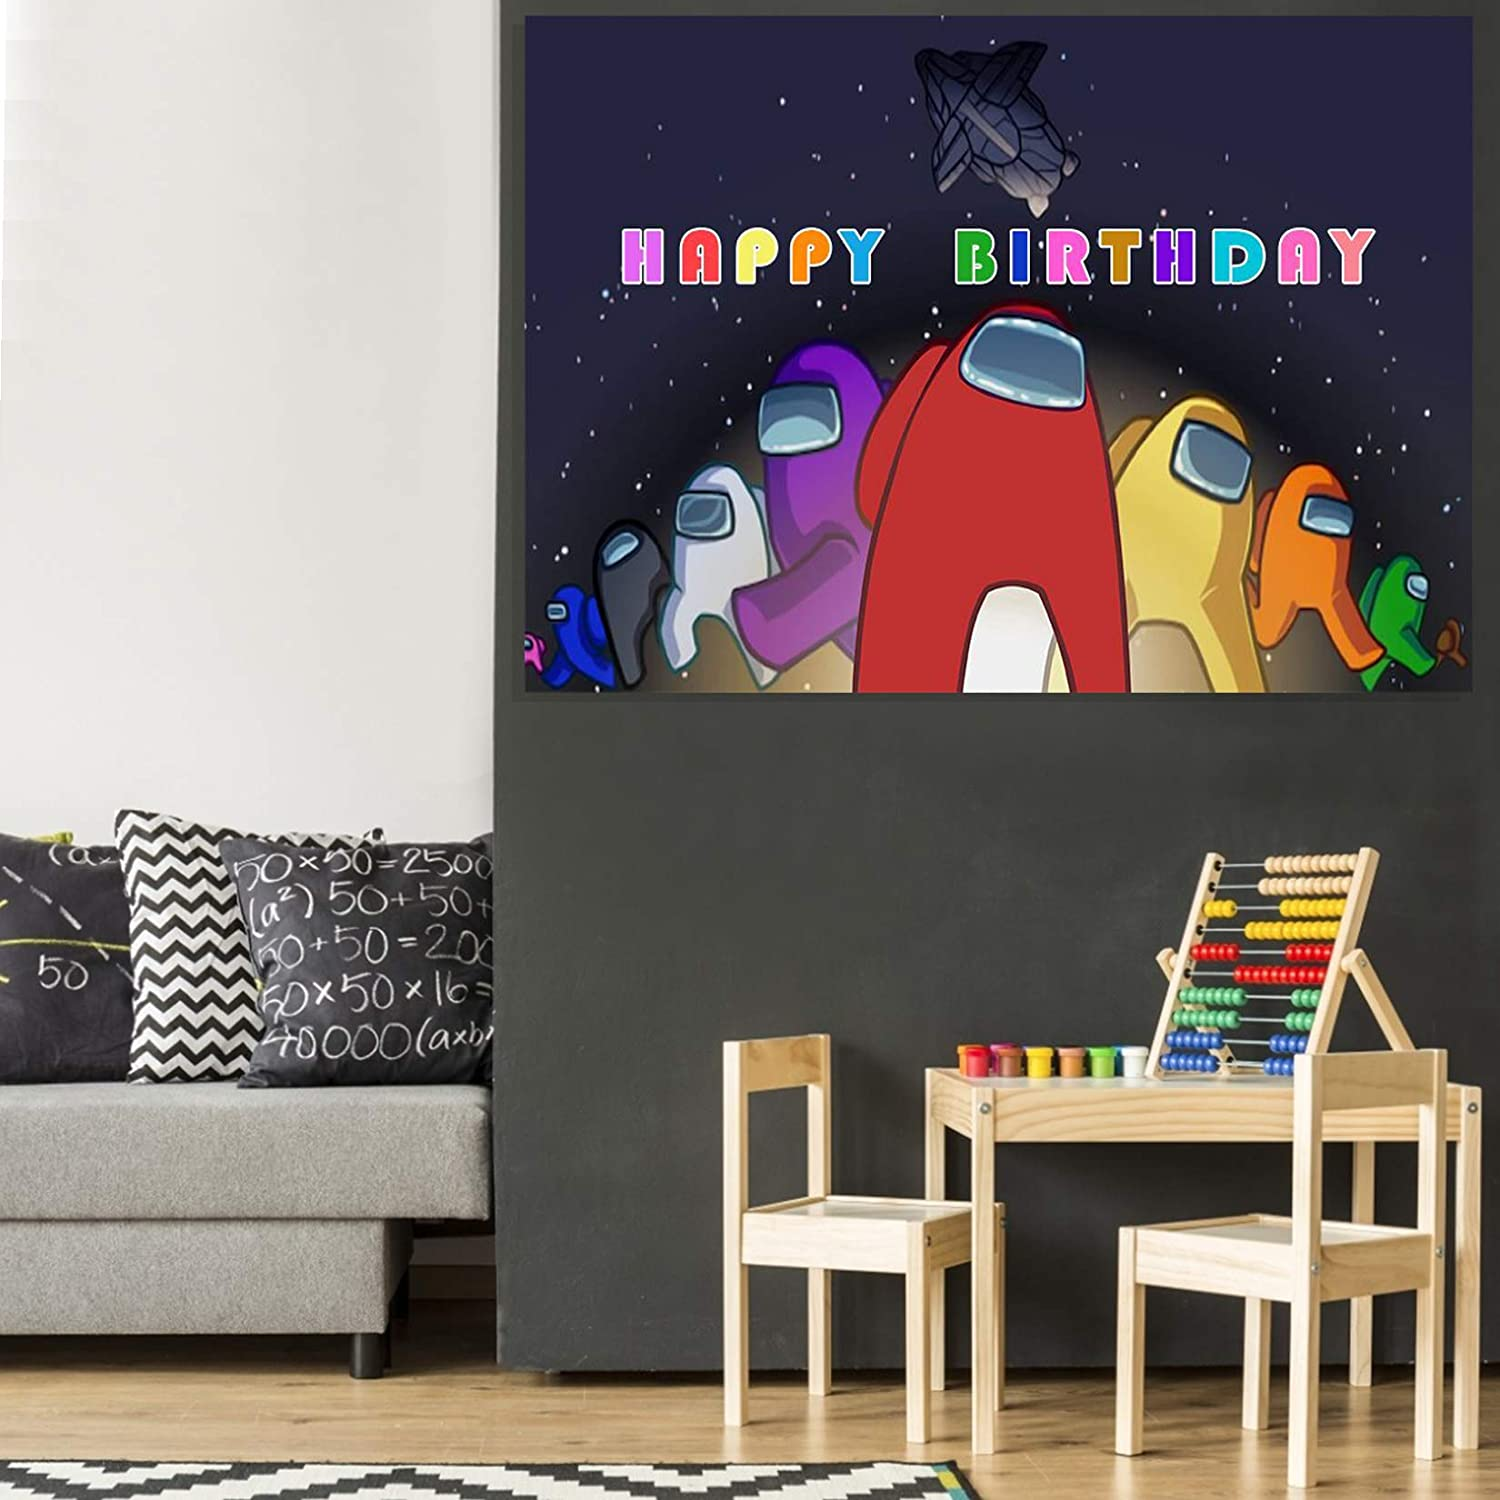 Pixel Happy Birthday Backdrop,Among Us Game Background Banner for Men Boy Kids/' Game Theme Birthday Party Decoration Among Us Birthday Decoration 5x3ft